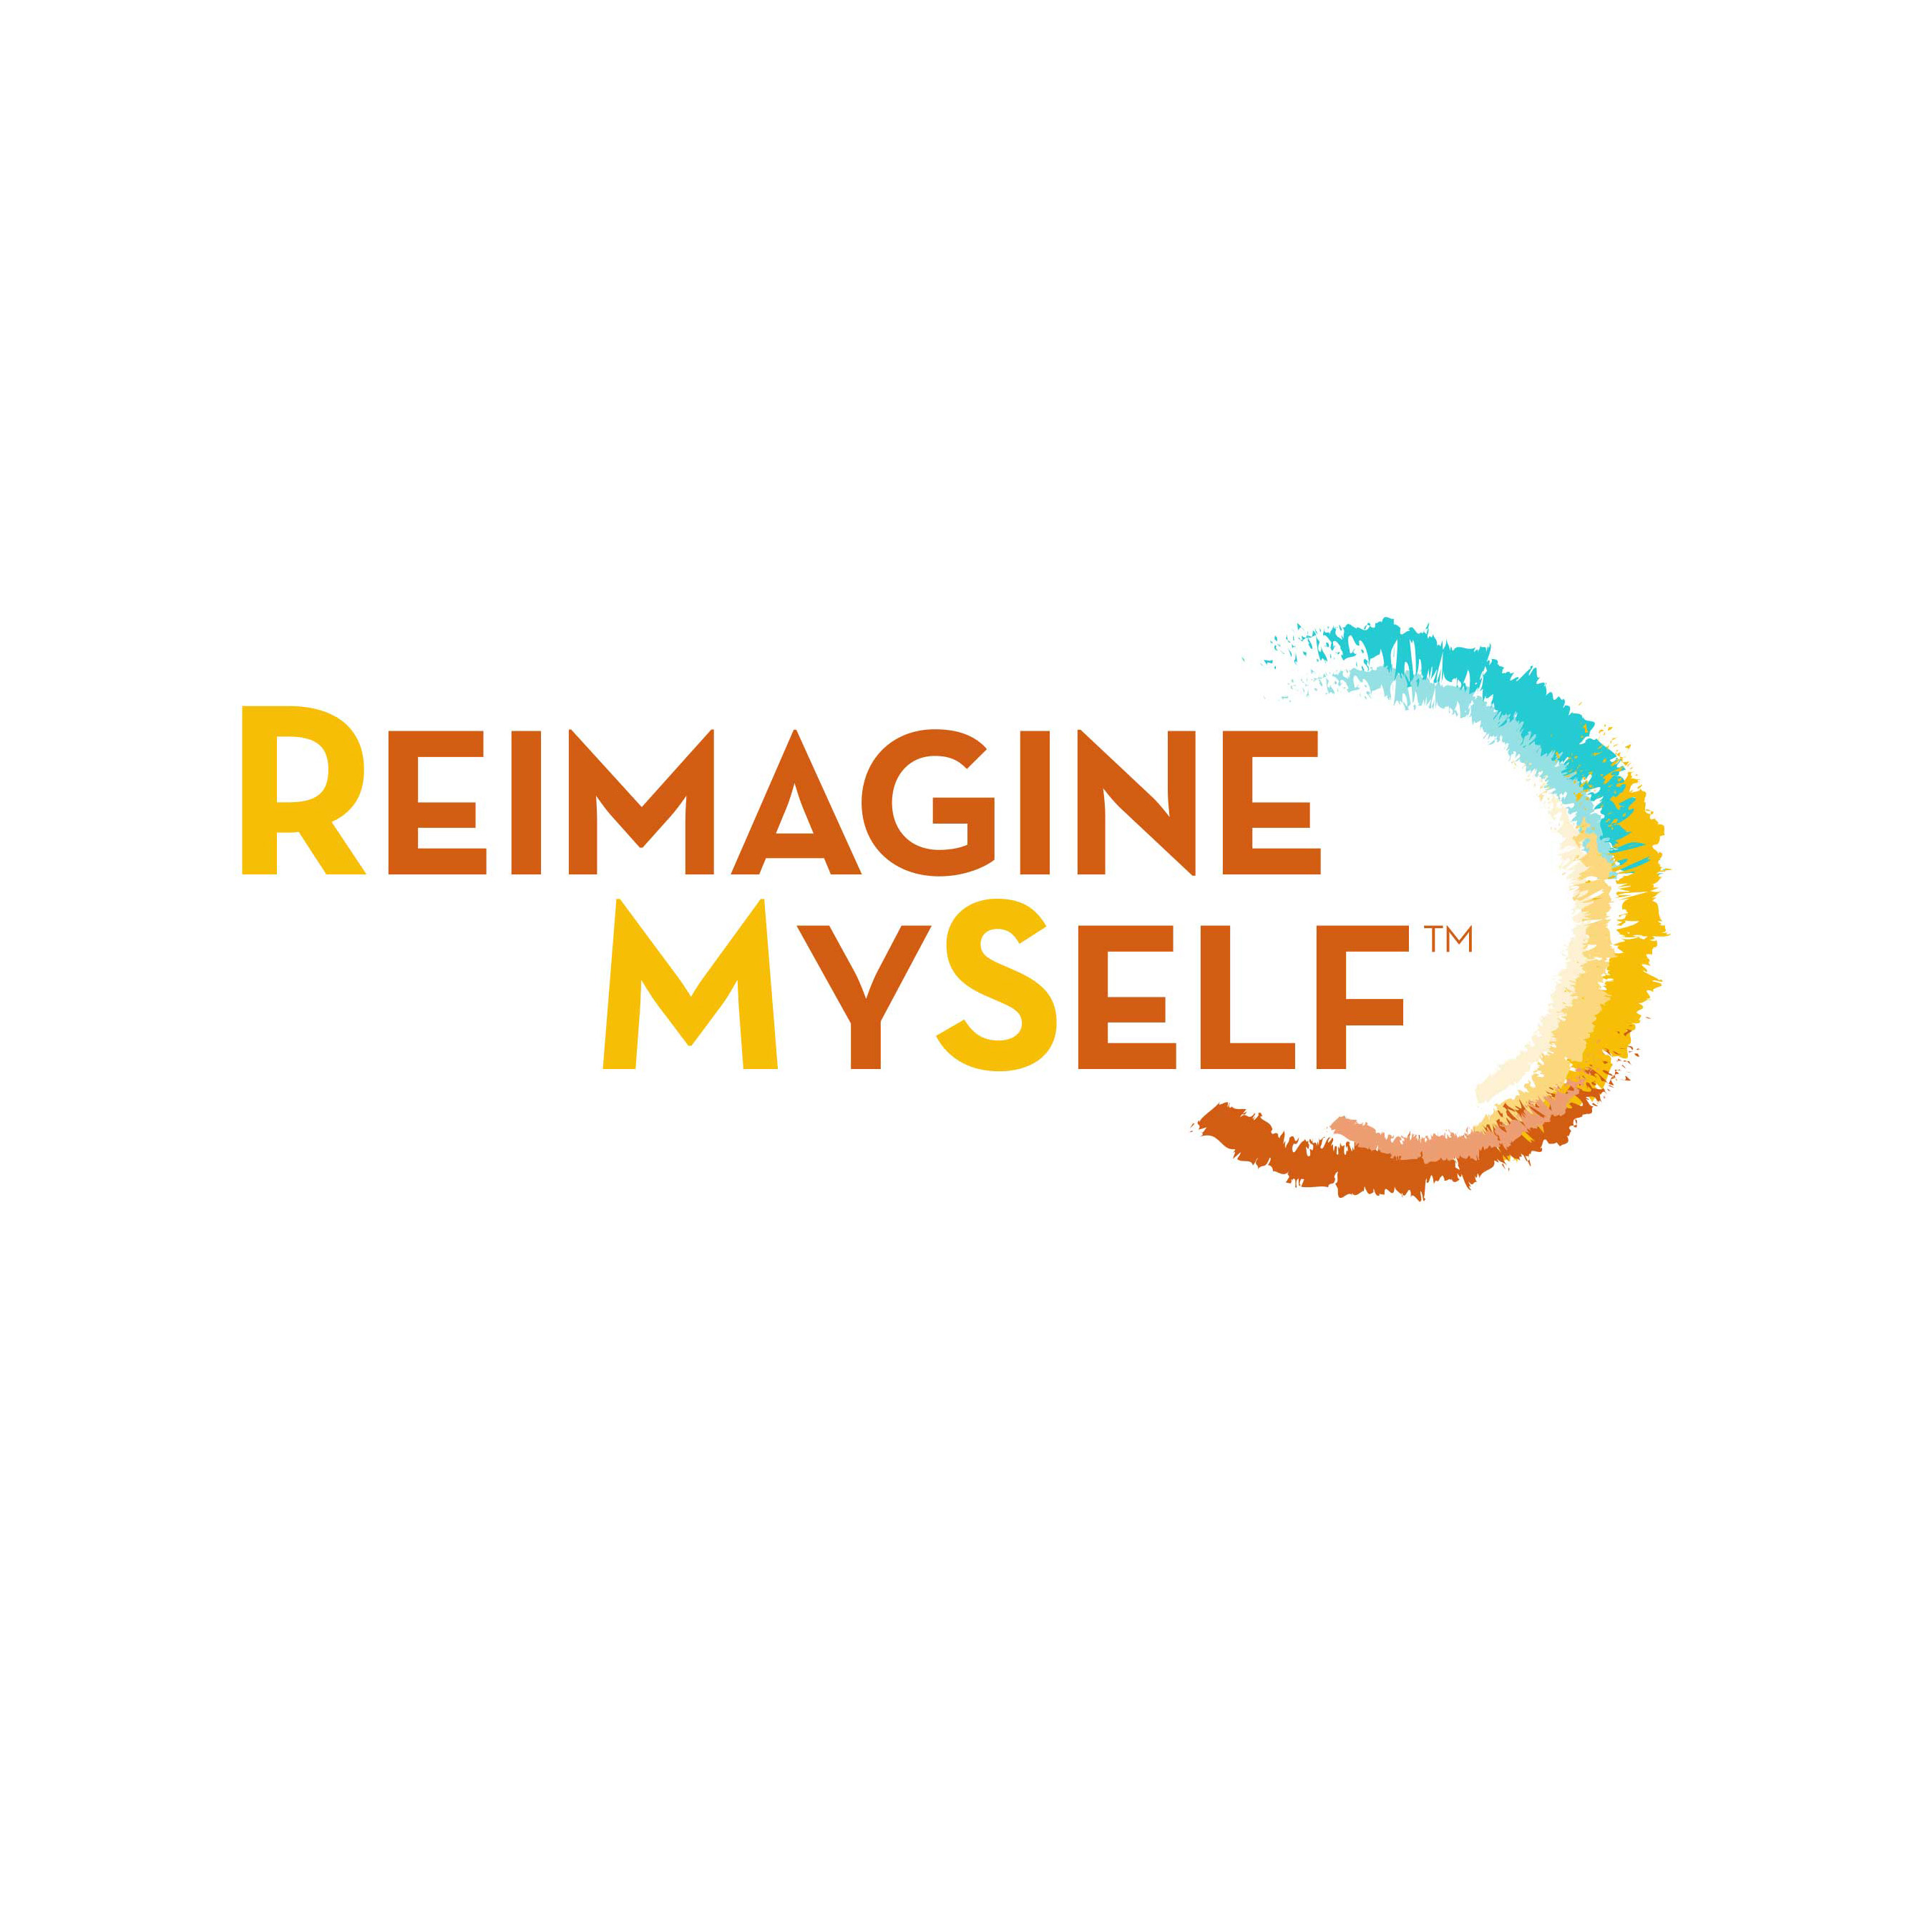 The Reimagine MySelf™ program is now live, encouraging women with relapsing multiple sclerosis (RMS) to reimagine daily life with the chronic disease. Visit self.com/reimaginemyself to learn more.